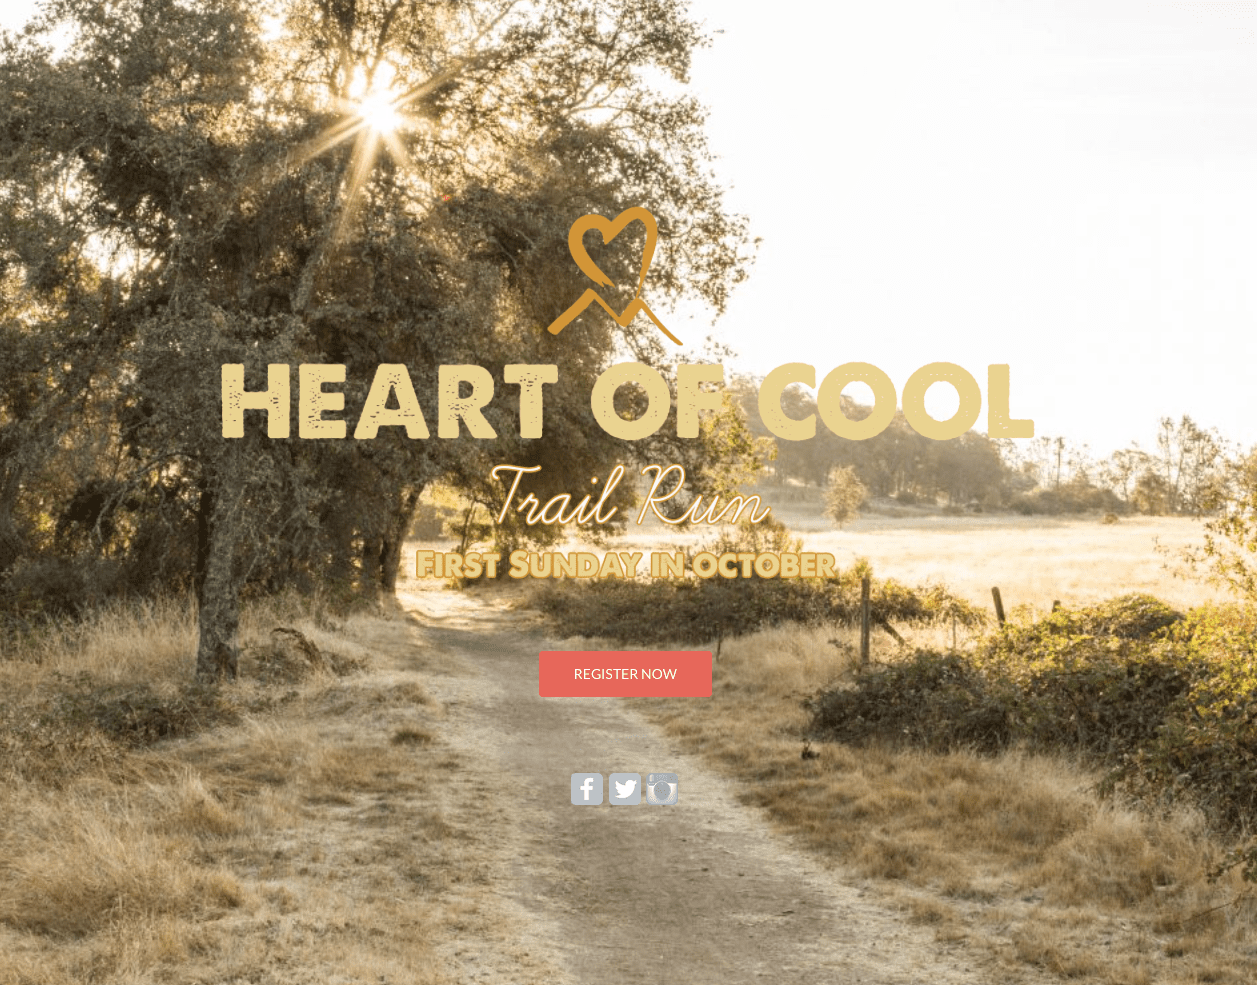 Heart Of Cool Trail Run